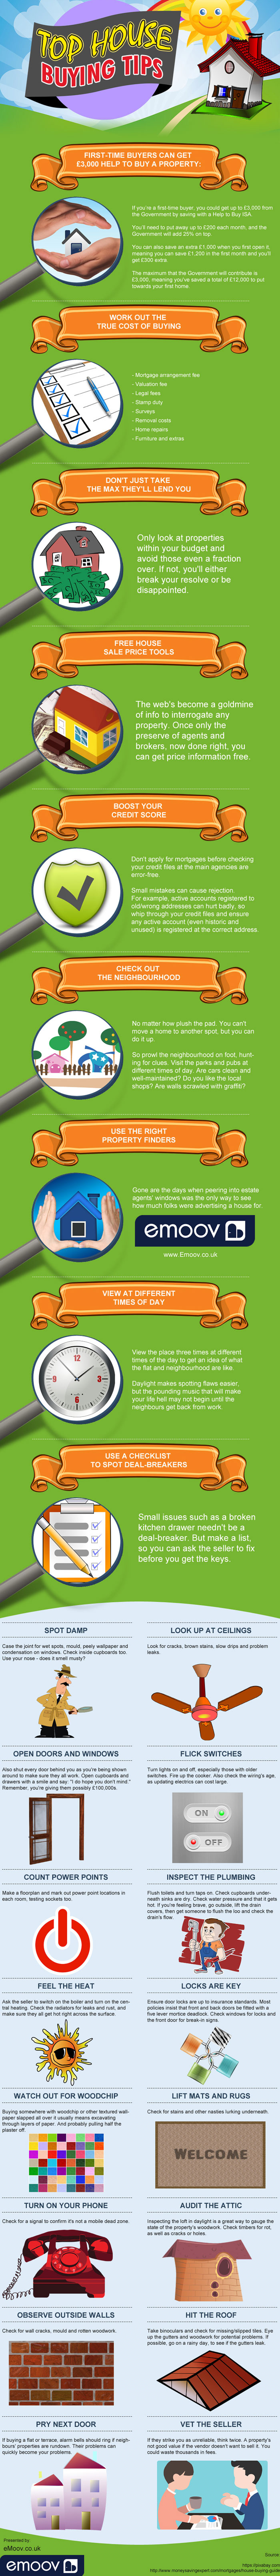 A Guide To Buying Houses - Infographic